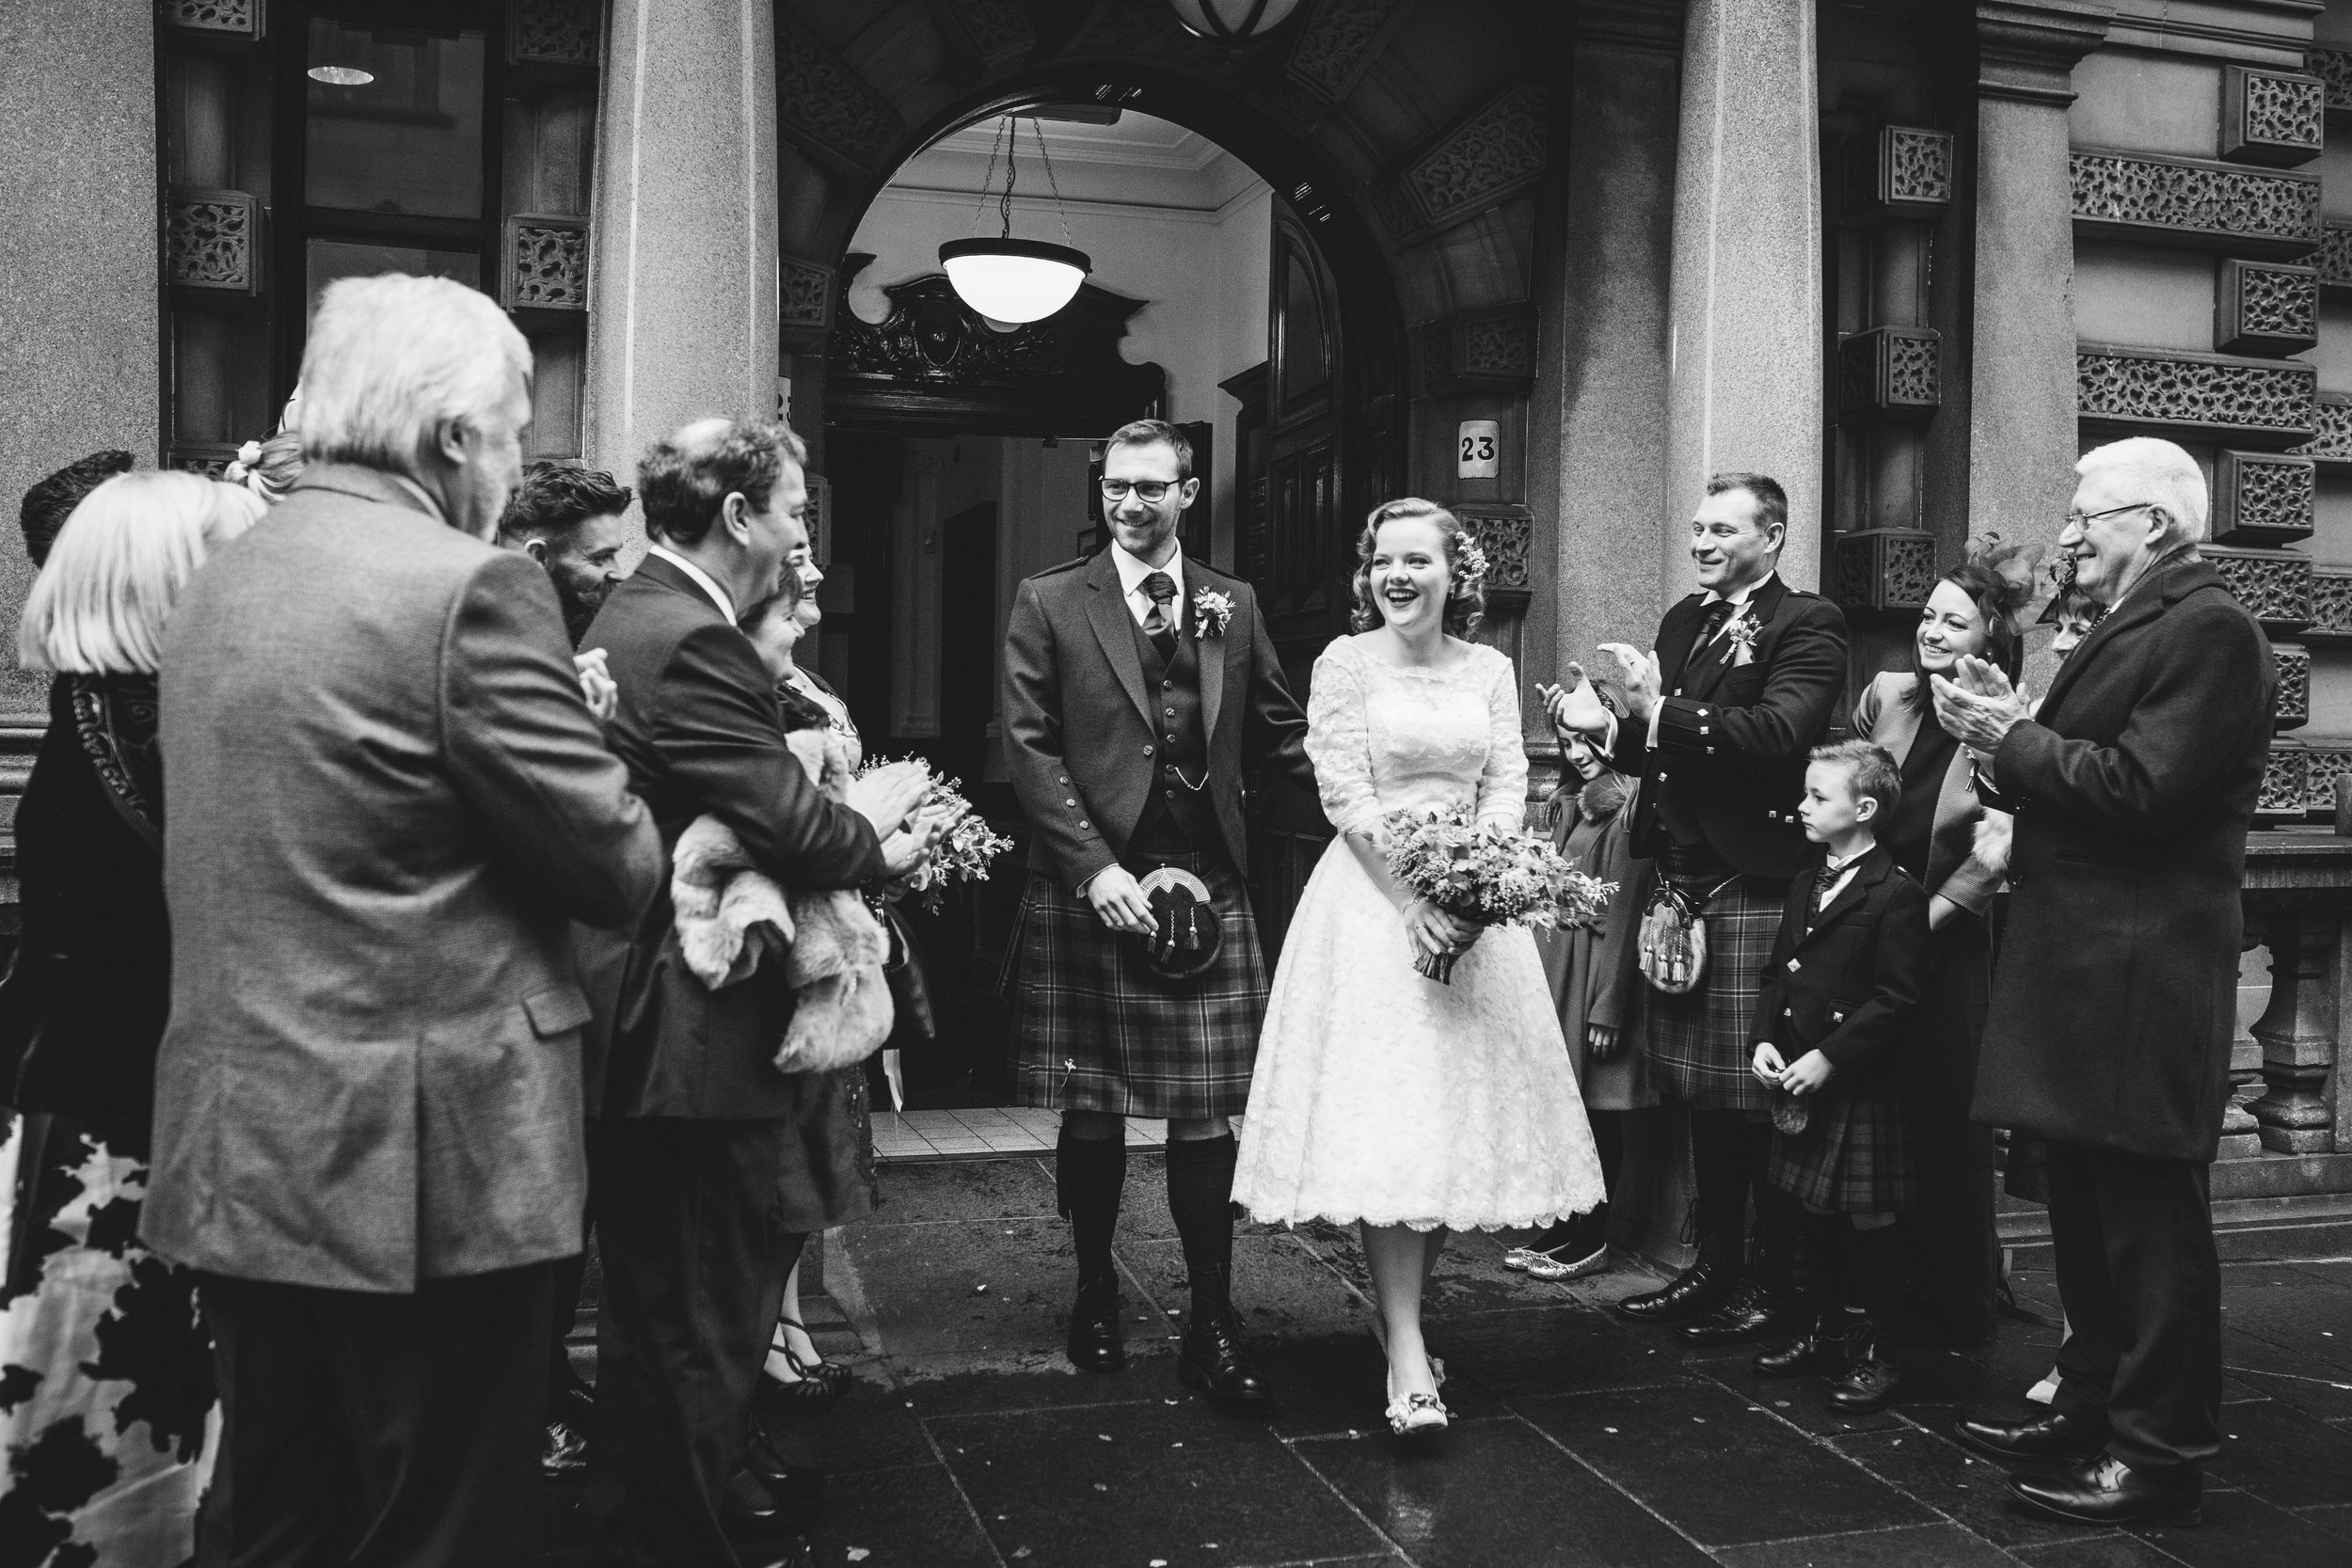 Sophie & Graeme Wedding Nov 2018  141  web.JPG